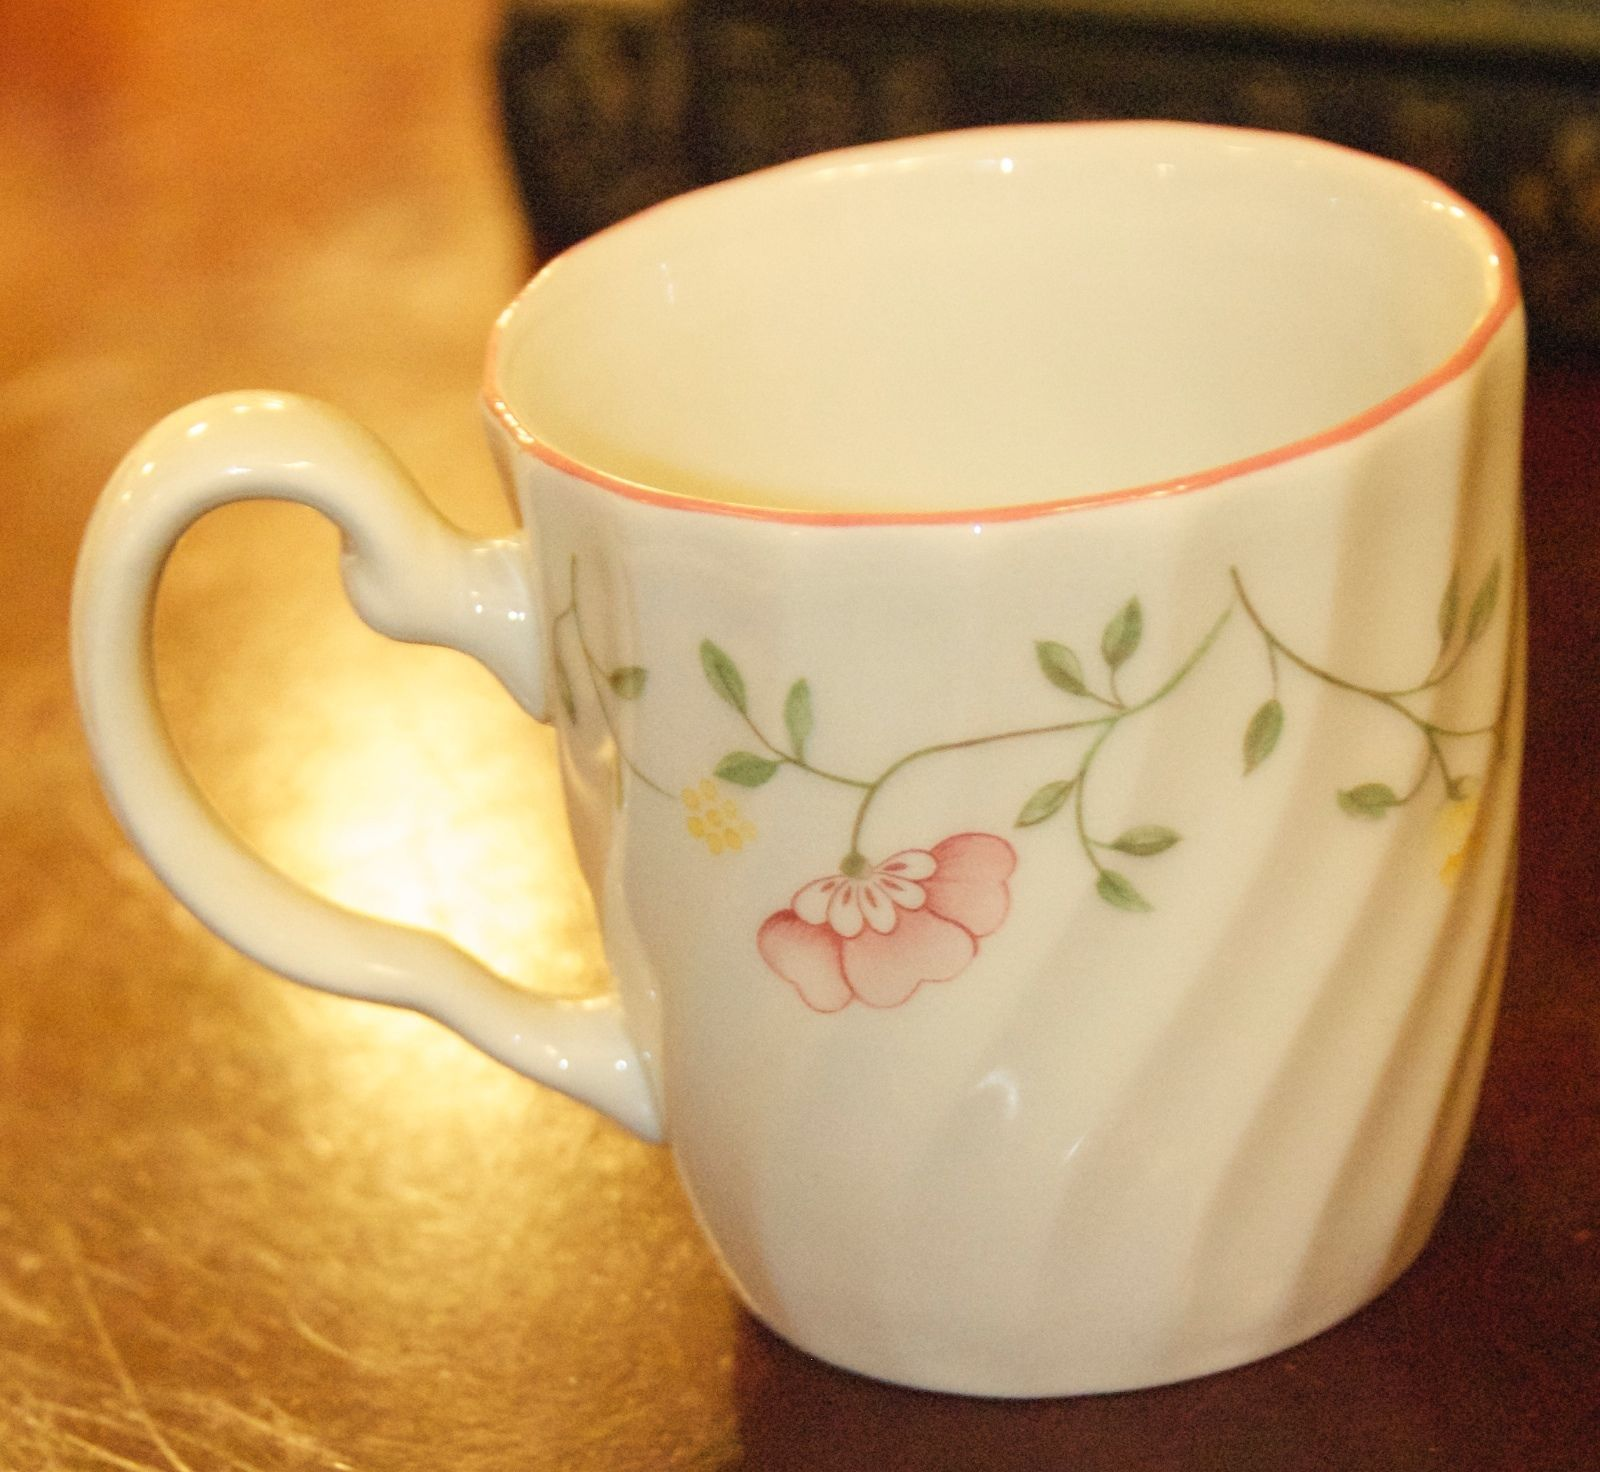 Primary image for JOHNSON BROS SUMMER CHINTZ COFFEE MUG FLORAL SWIRL PORCELAIN ENGLAND RED RIM EUC